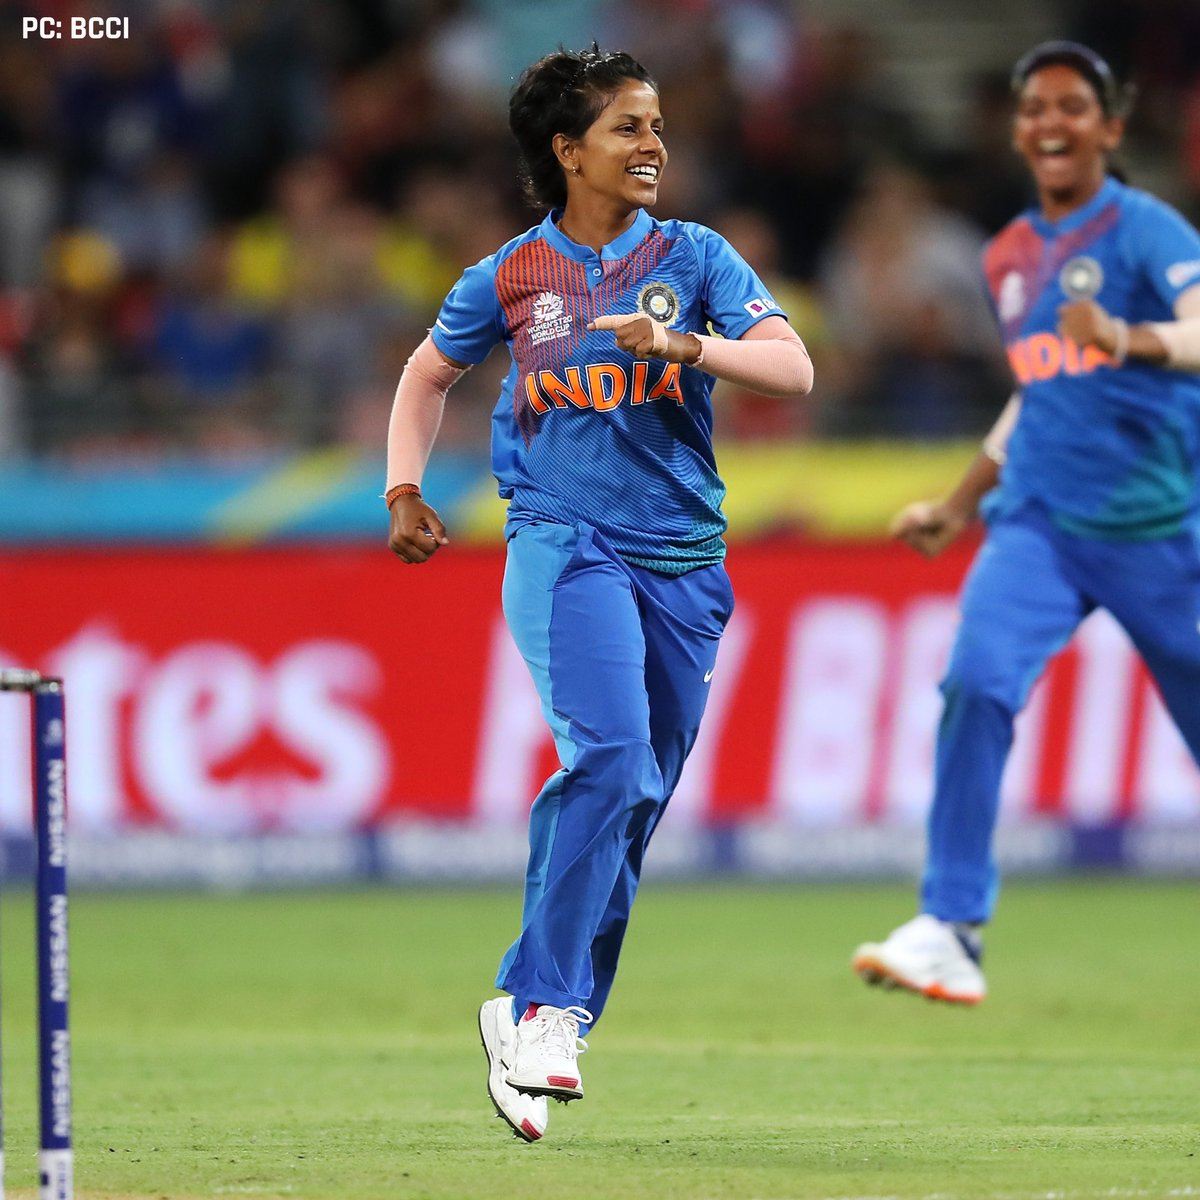 Poonam Yadav's spell of / and Shafali Verma's quickfire  off  helped the Indian Women's team win by 18 runs against Bangladesh!   #INDvBAN #T20WorldCup  #OrangeArmy<br>http://pic.twitter.com/JSwIdLEj9u